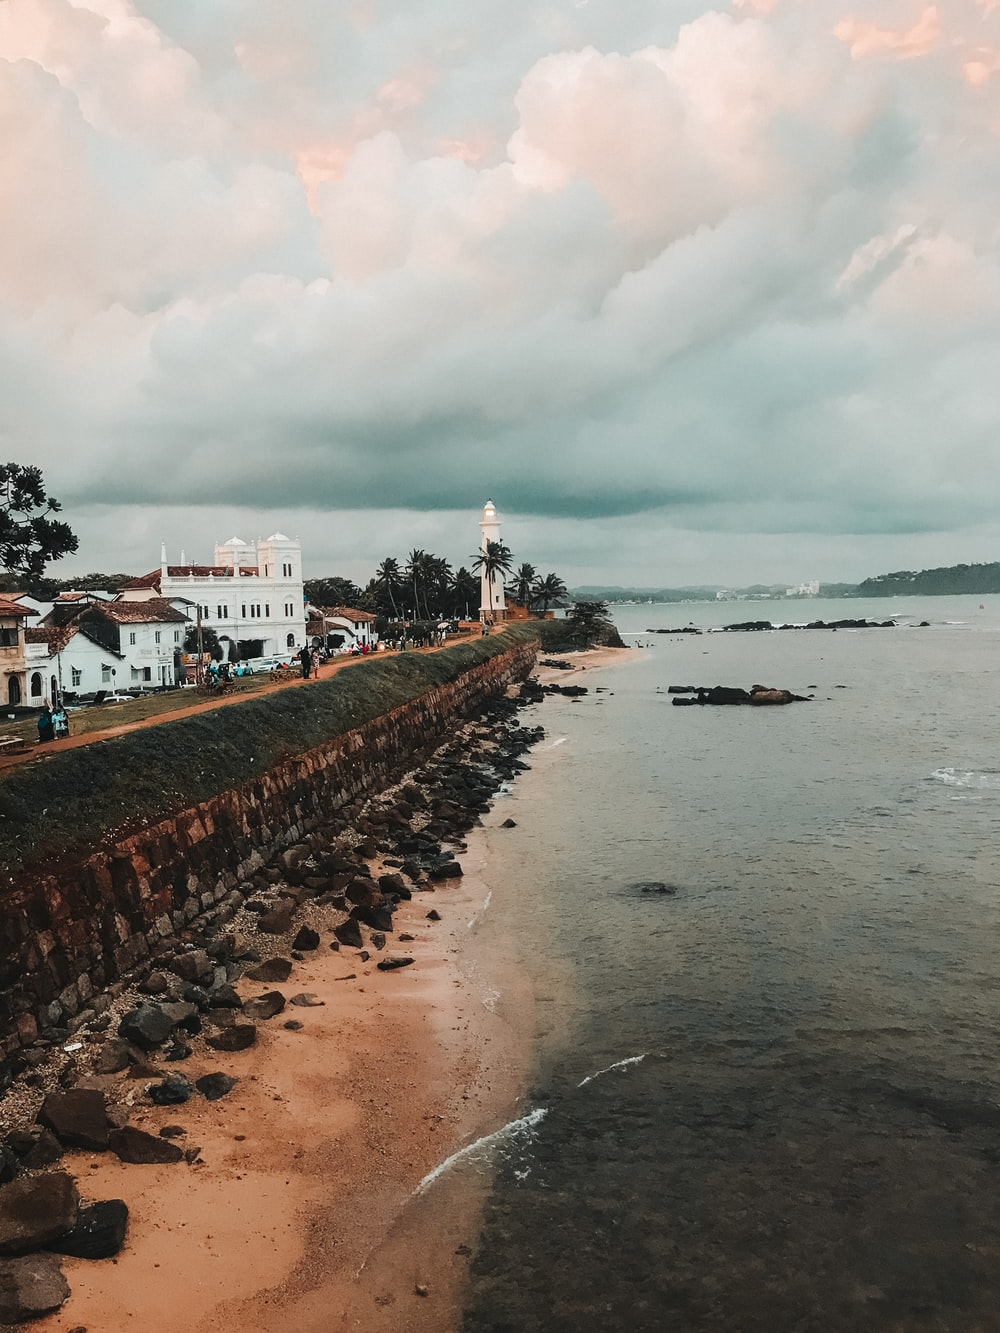 The galle fort and lighthouse